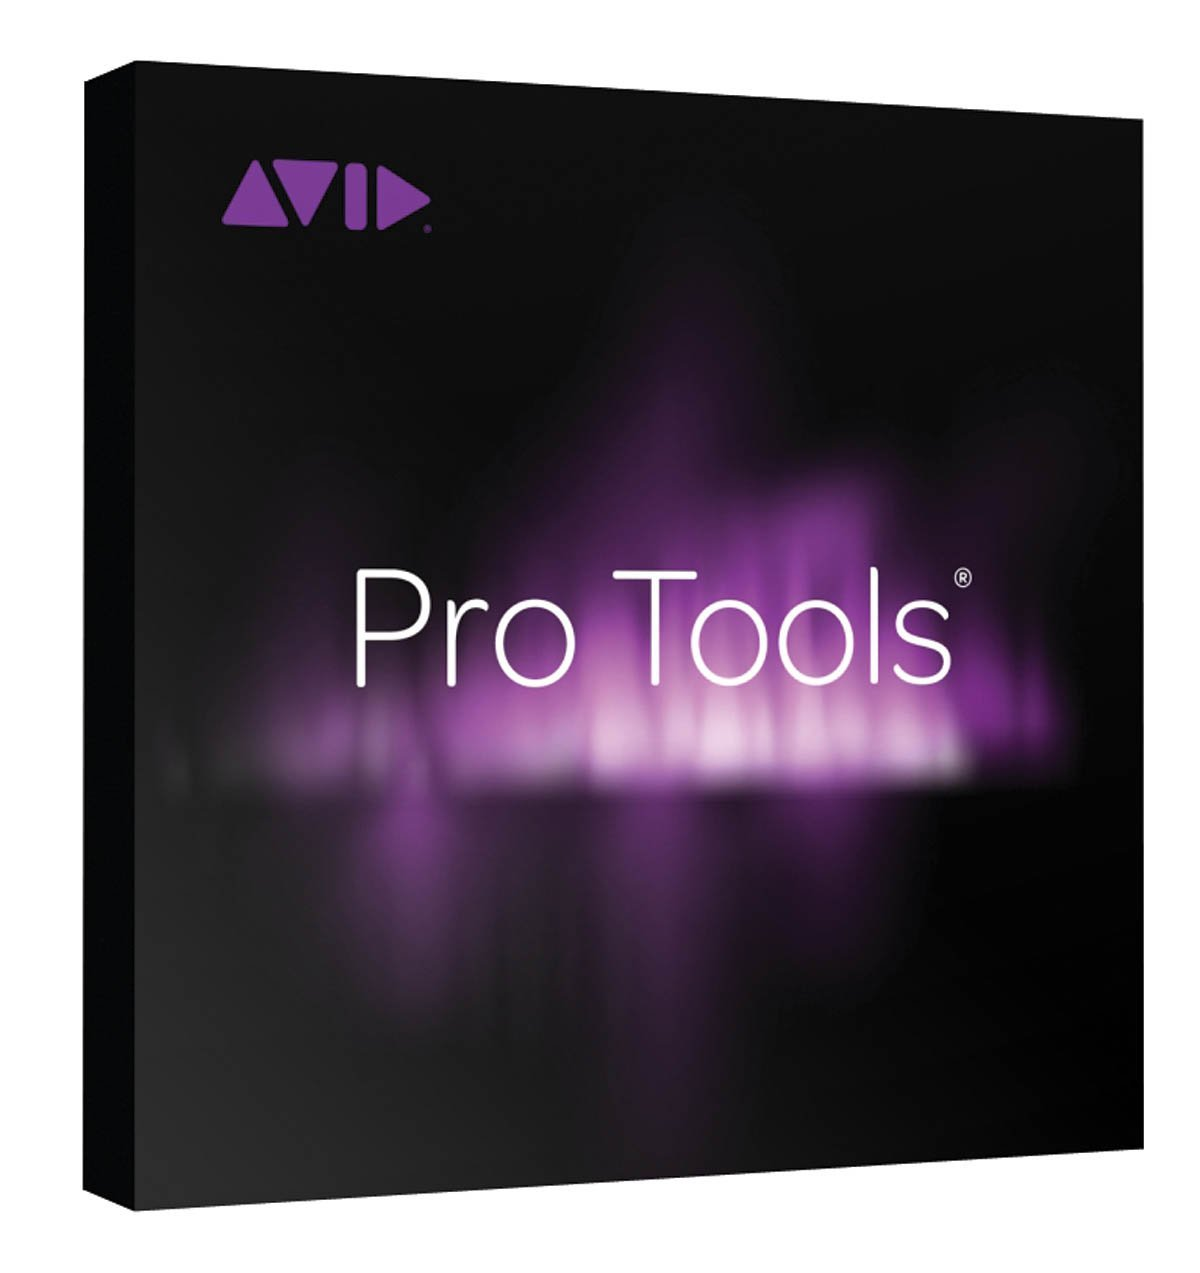 How To Make Protools For Windows Run Faster Without Buying A New Computer